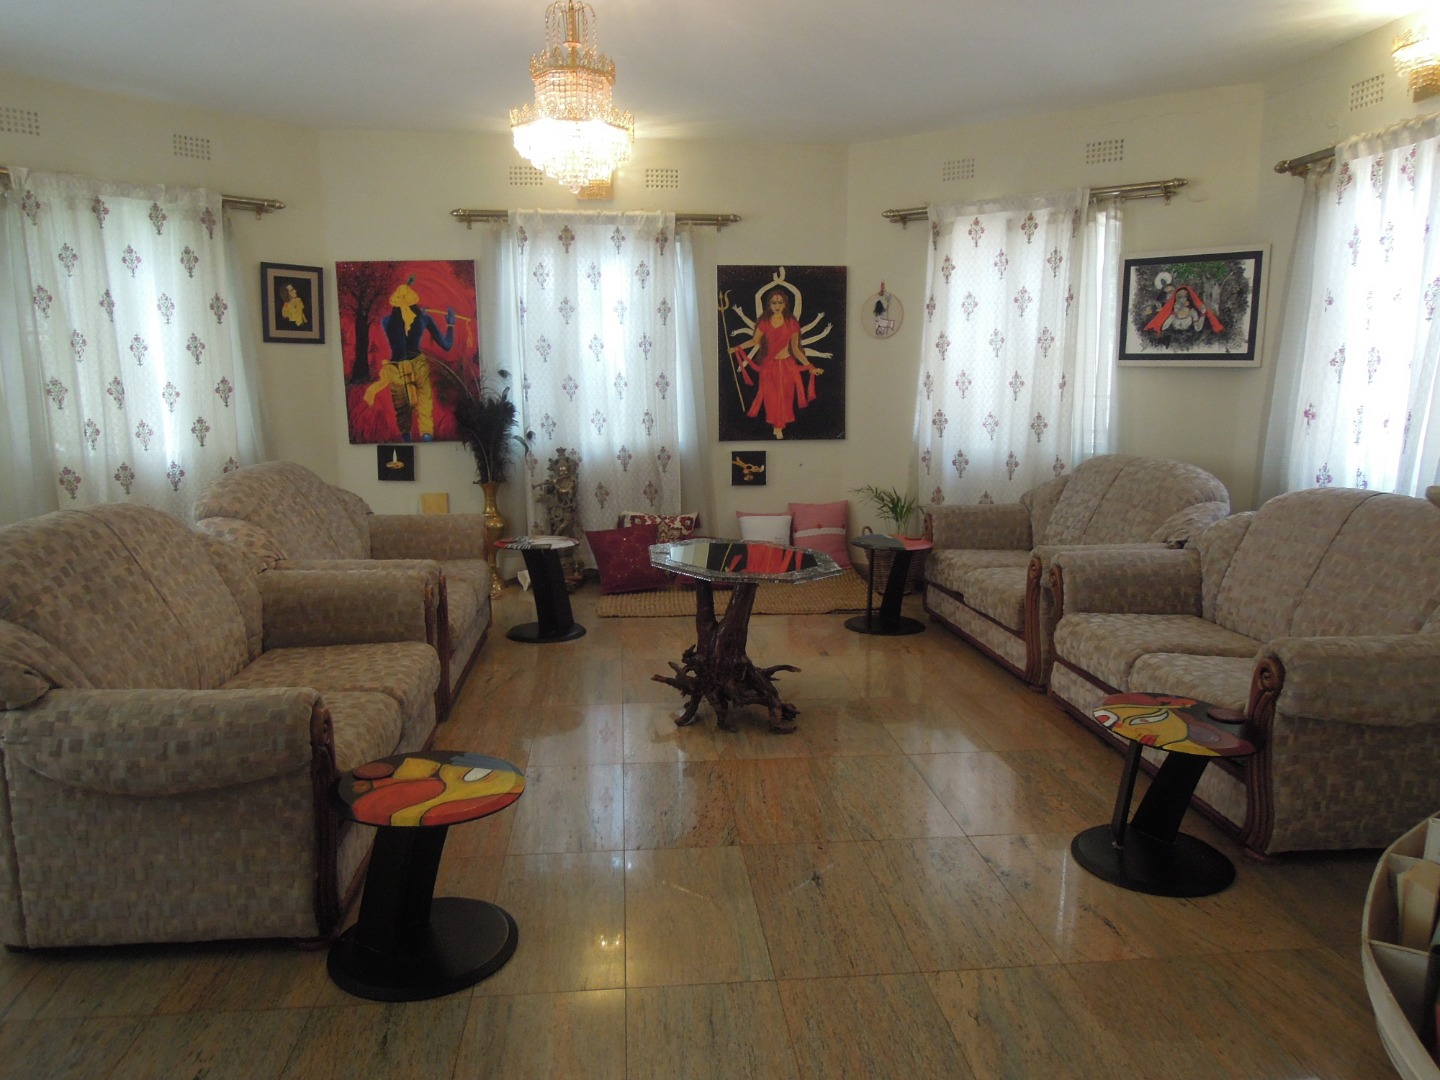 4 Bedroom House For Sale in Kgale